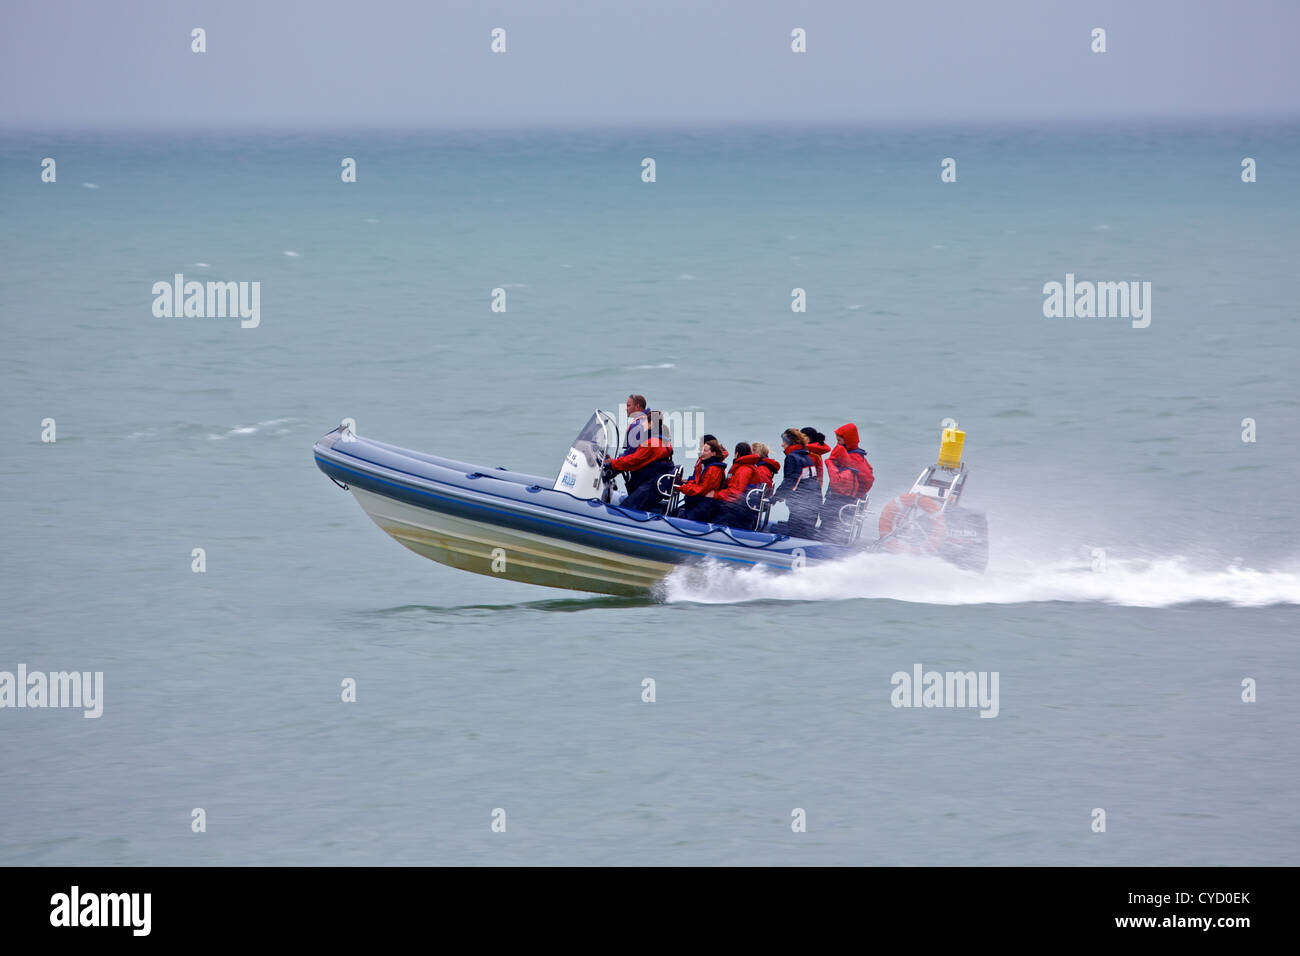 A Lyme Bay RIB Charter excursion along the Jurassic Coast at West Bay, Dorset, UK - Stock Image